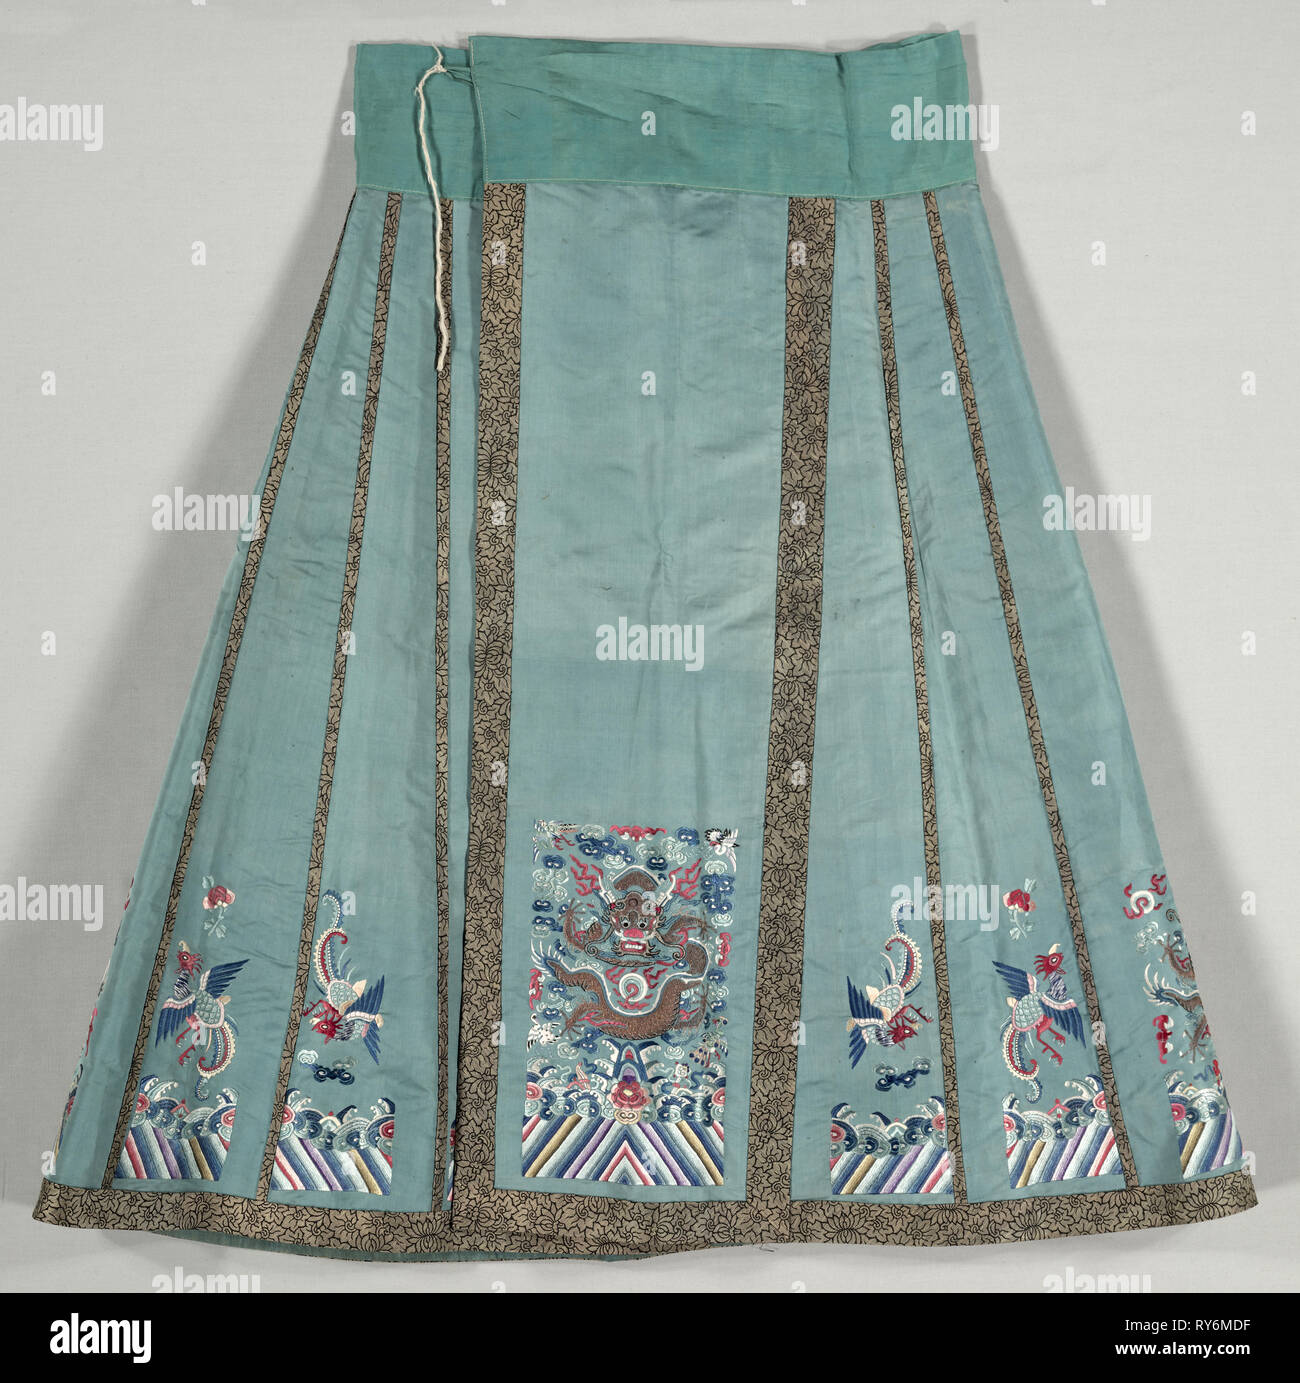 Woman's Bridal Dress, Pleated Skirt, 1800s. China, Qing Dynasty, late 19th century. Embroidery: silk, gilt-metal thread; overall: 94.6 x 86.4 cm (37 1/4 x 34 in - Stock Image